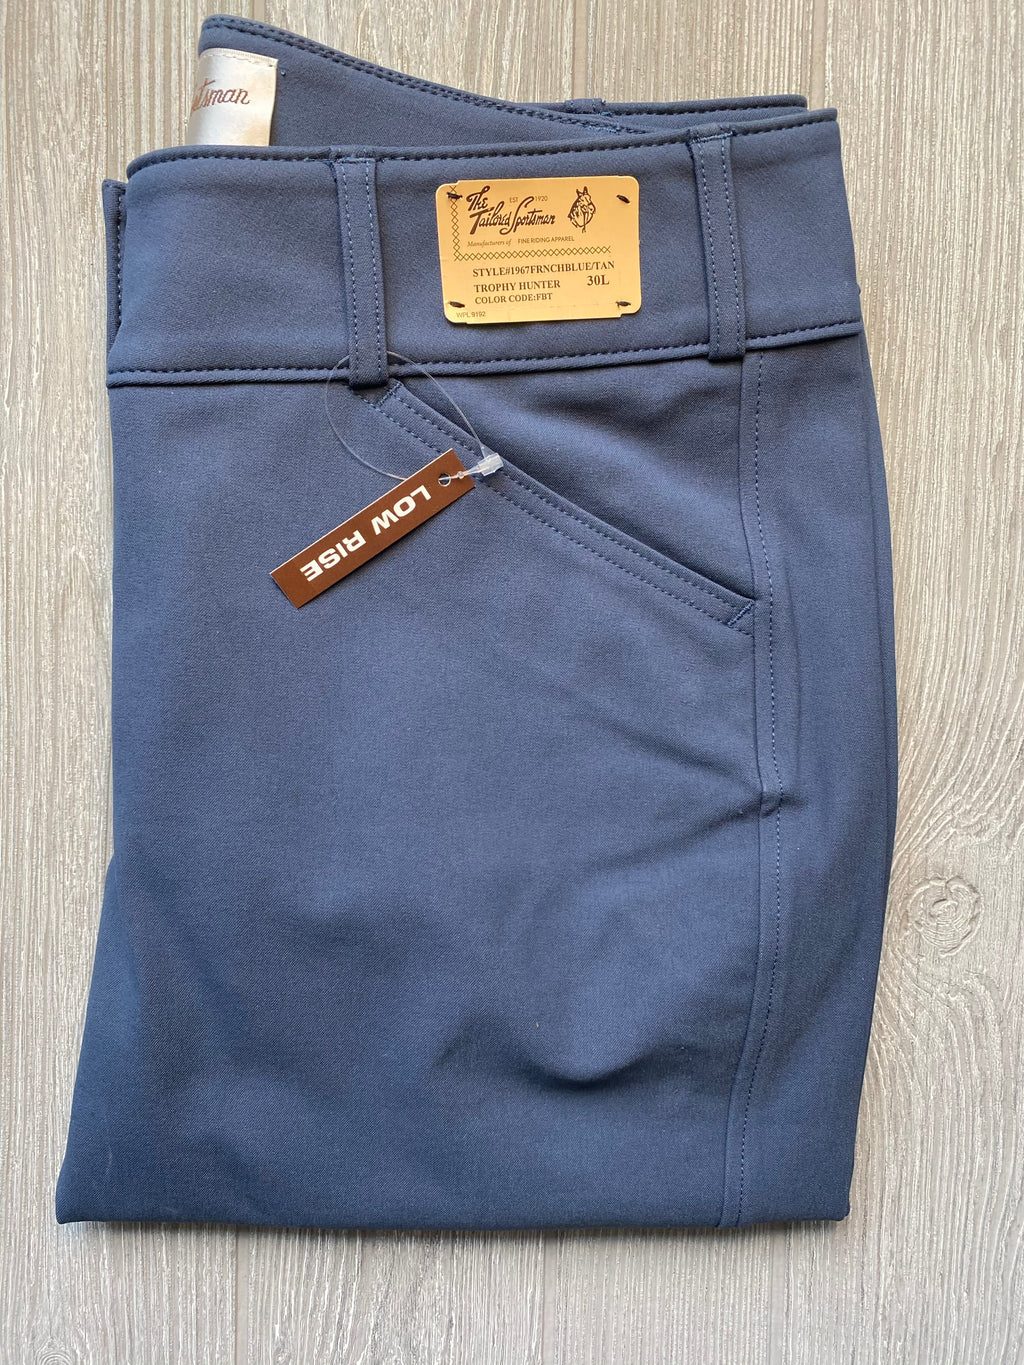 The Tailored Sportsman Trophy Hunter - French blue/ tan~ LOW RISE